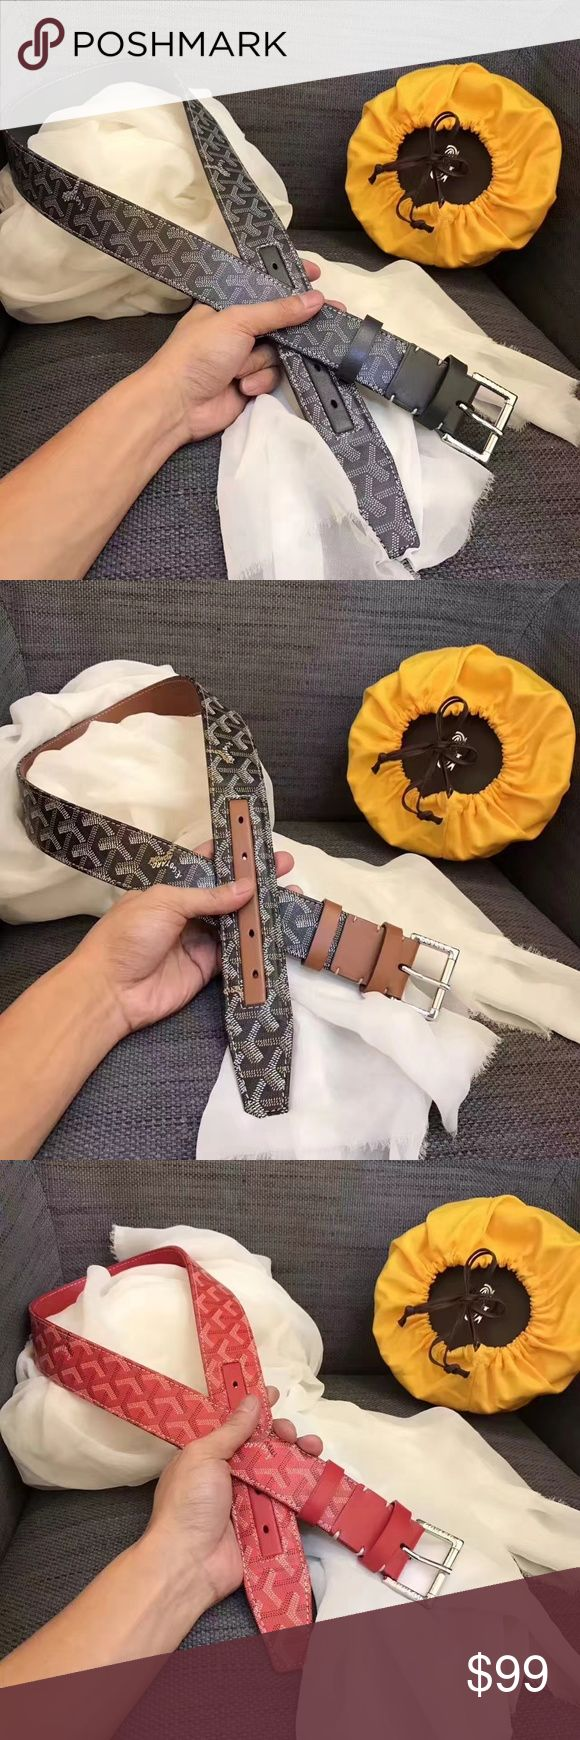 Goyard belt for women and man Dear, It is 1:1 quality for women and man. The size is about 26-44, waist 70-110. If you are interested, you can my wechat : belindamiler, or ins:blindamiler.bag, email: blindamiler@gmail.com , whatsapp:+8613599027729. we ship it worldwide free. Goyard Accessories Belts